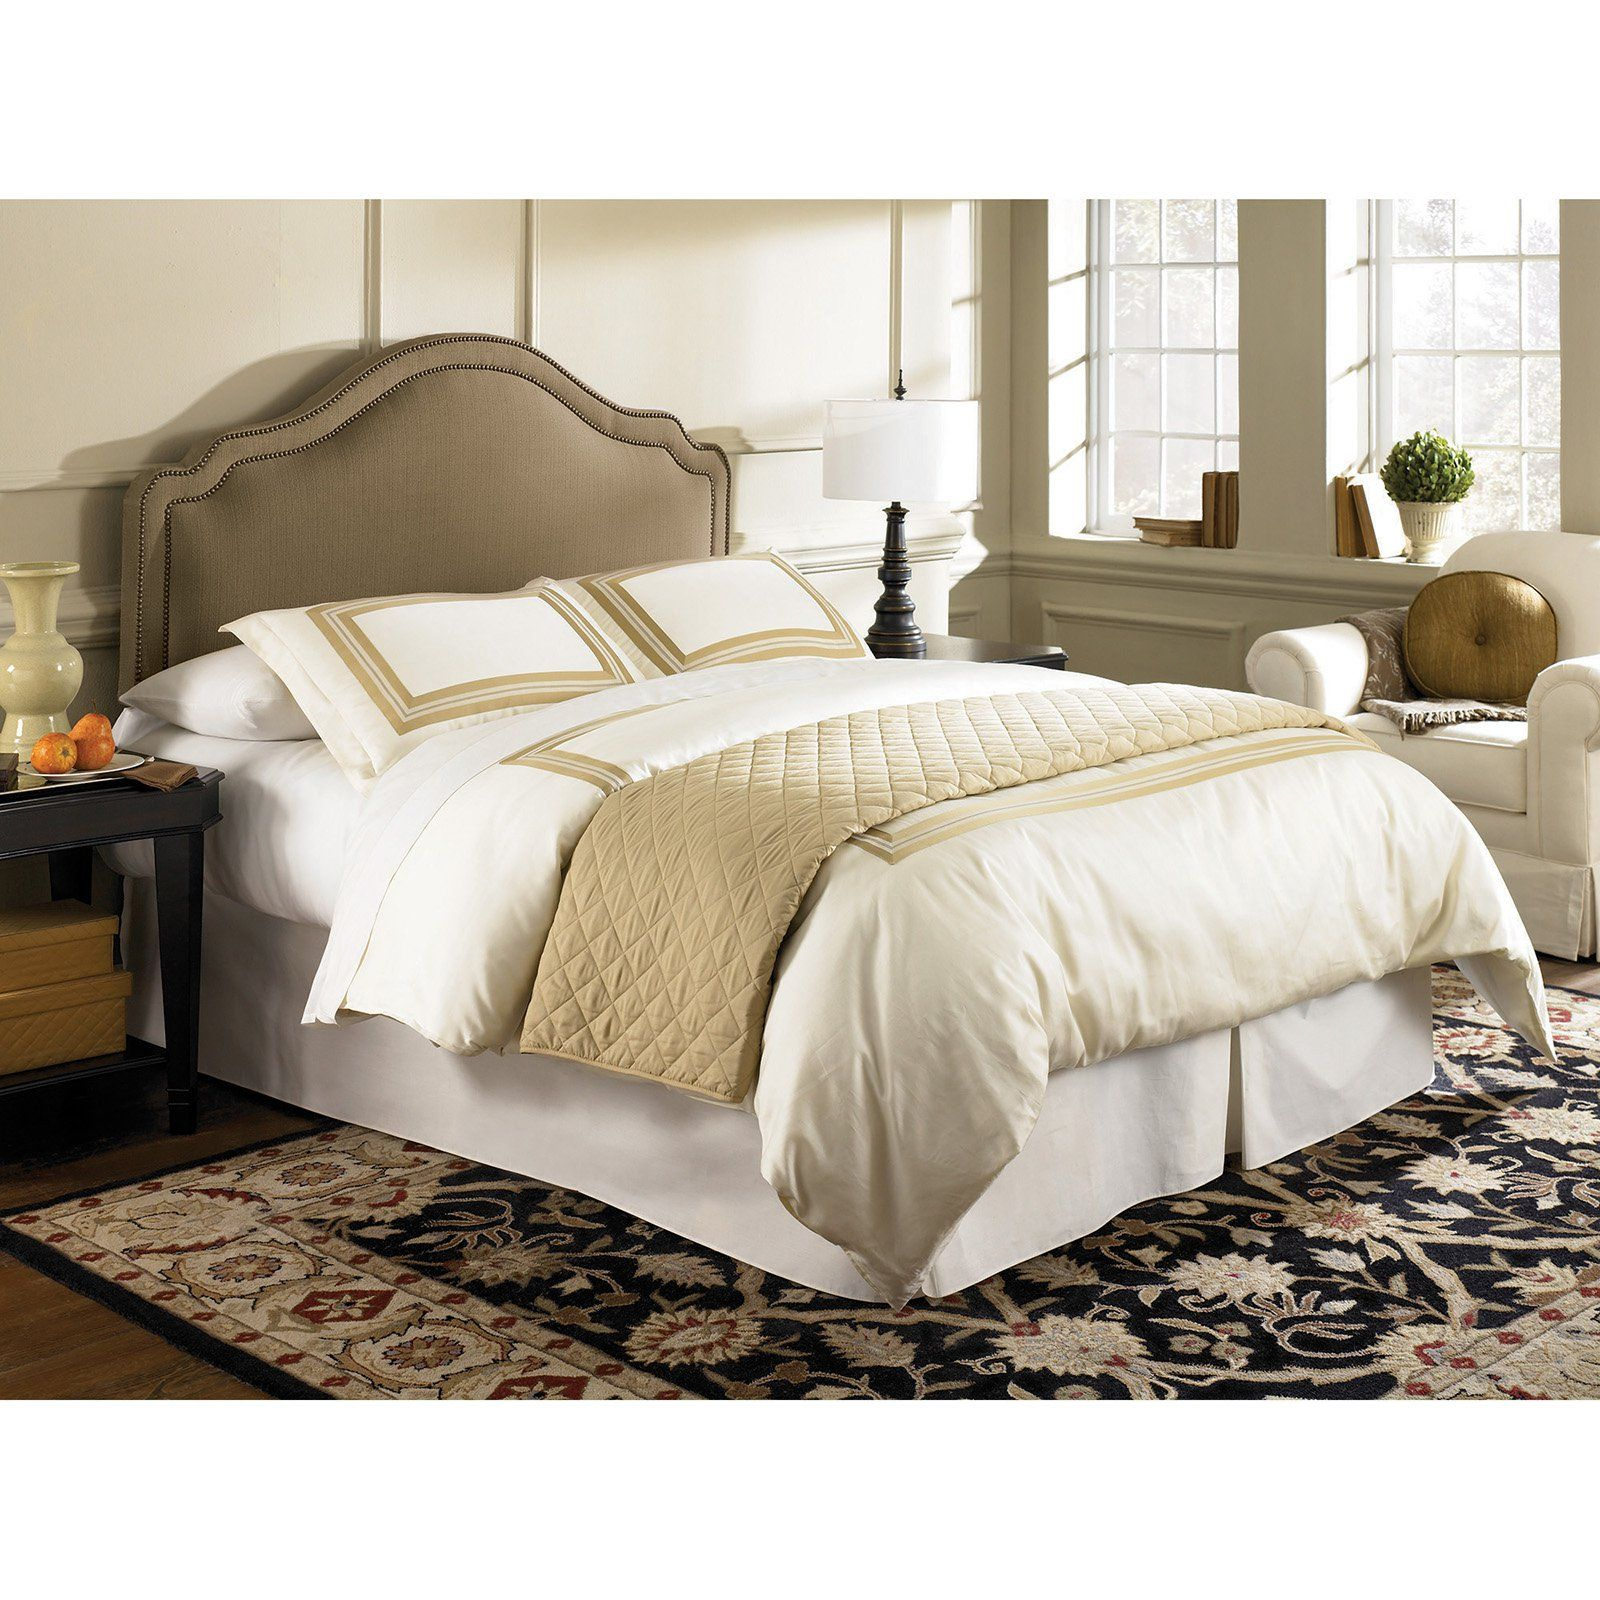 Fashion Bed Group Versailles Upholstered Headboard, Size